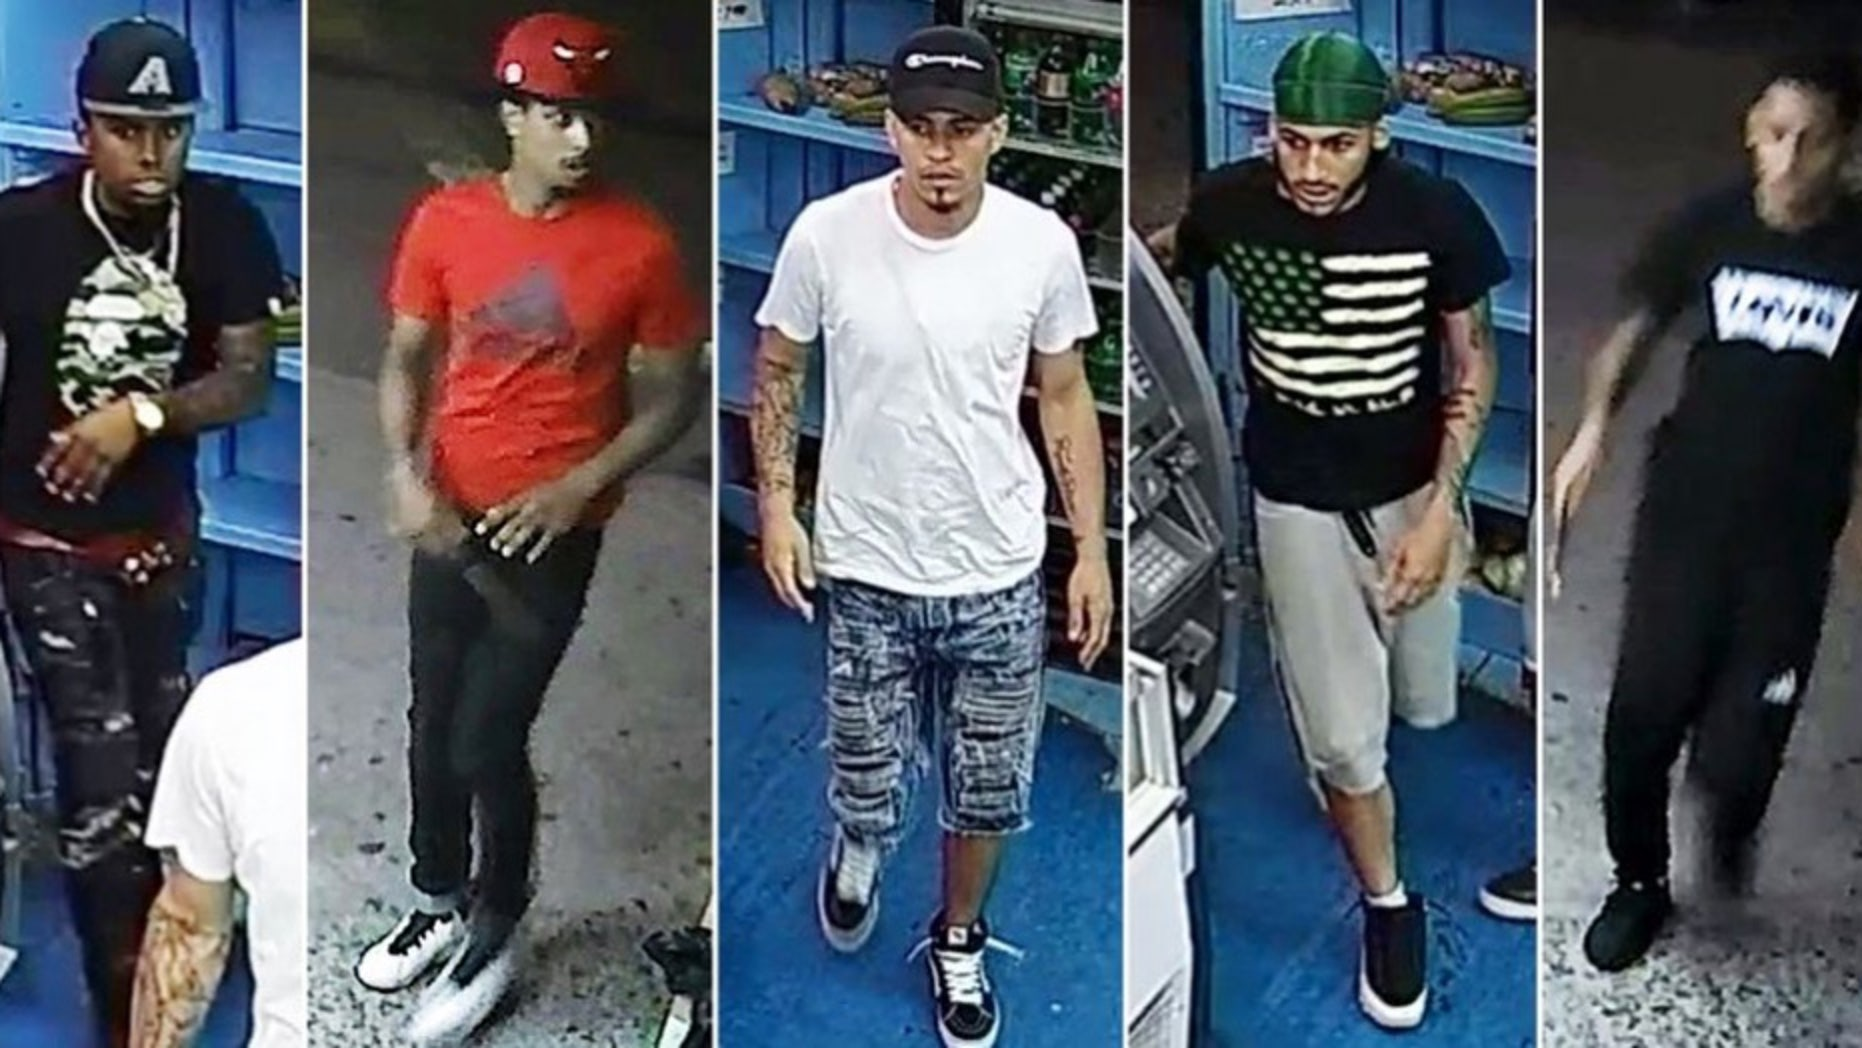 """New York police said they're seeking the public's help identifying a group of males believed to be connected to the """"brutal"""" stabbing that led to the death of a 15-year-old boy in the Bronx earlier this week."""